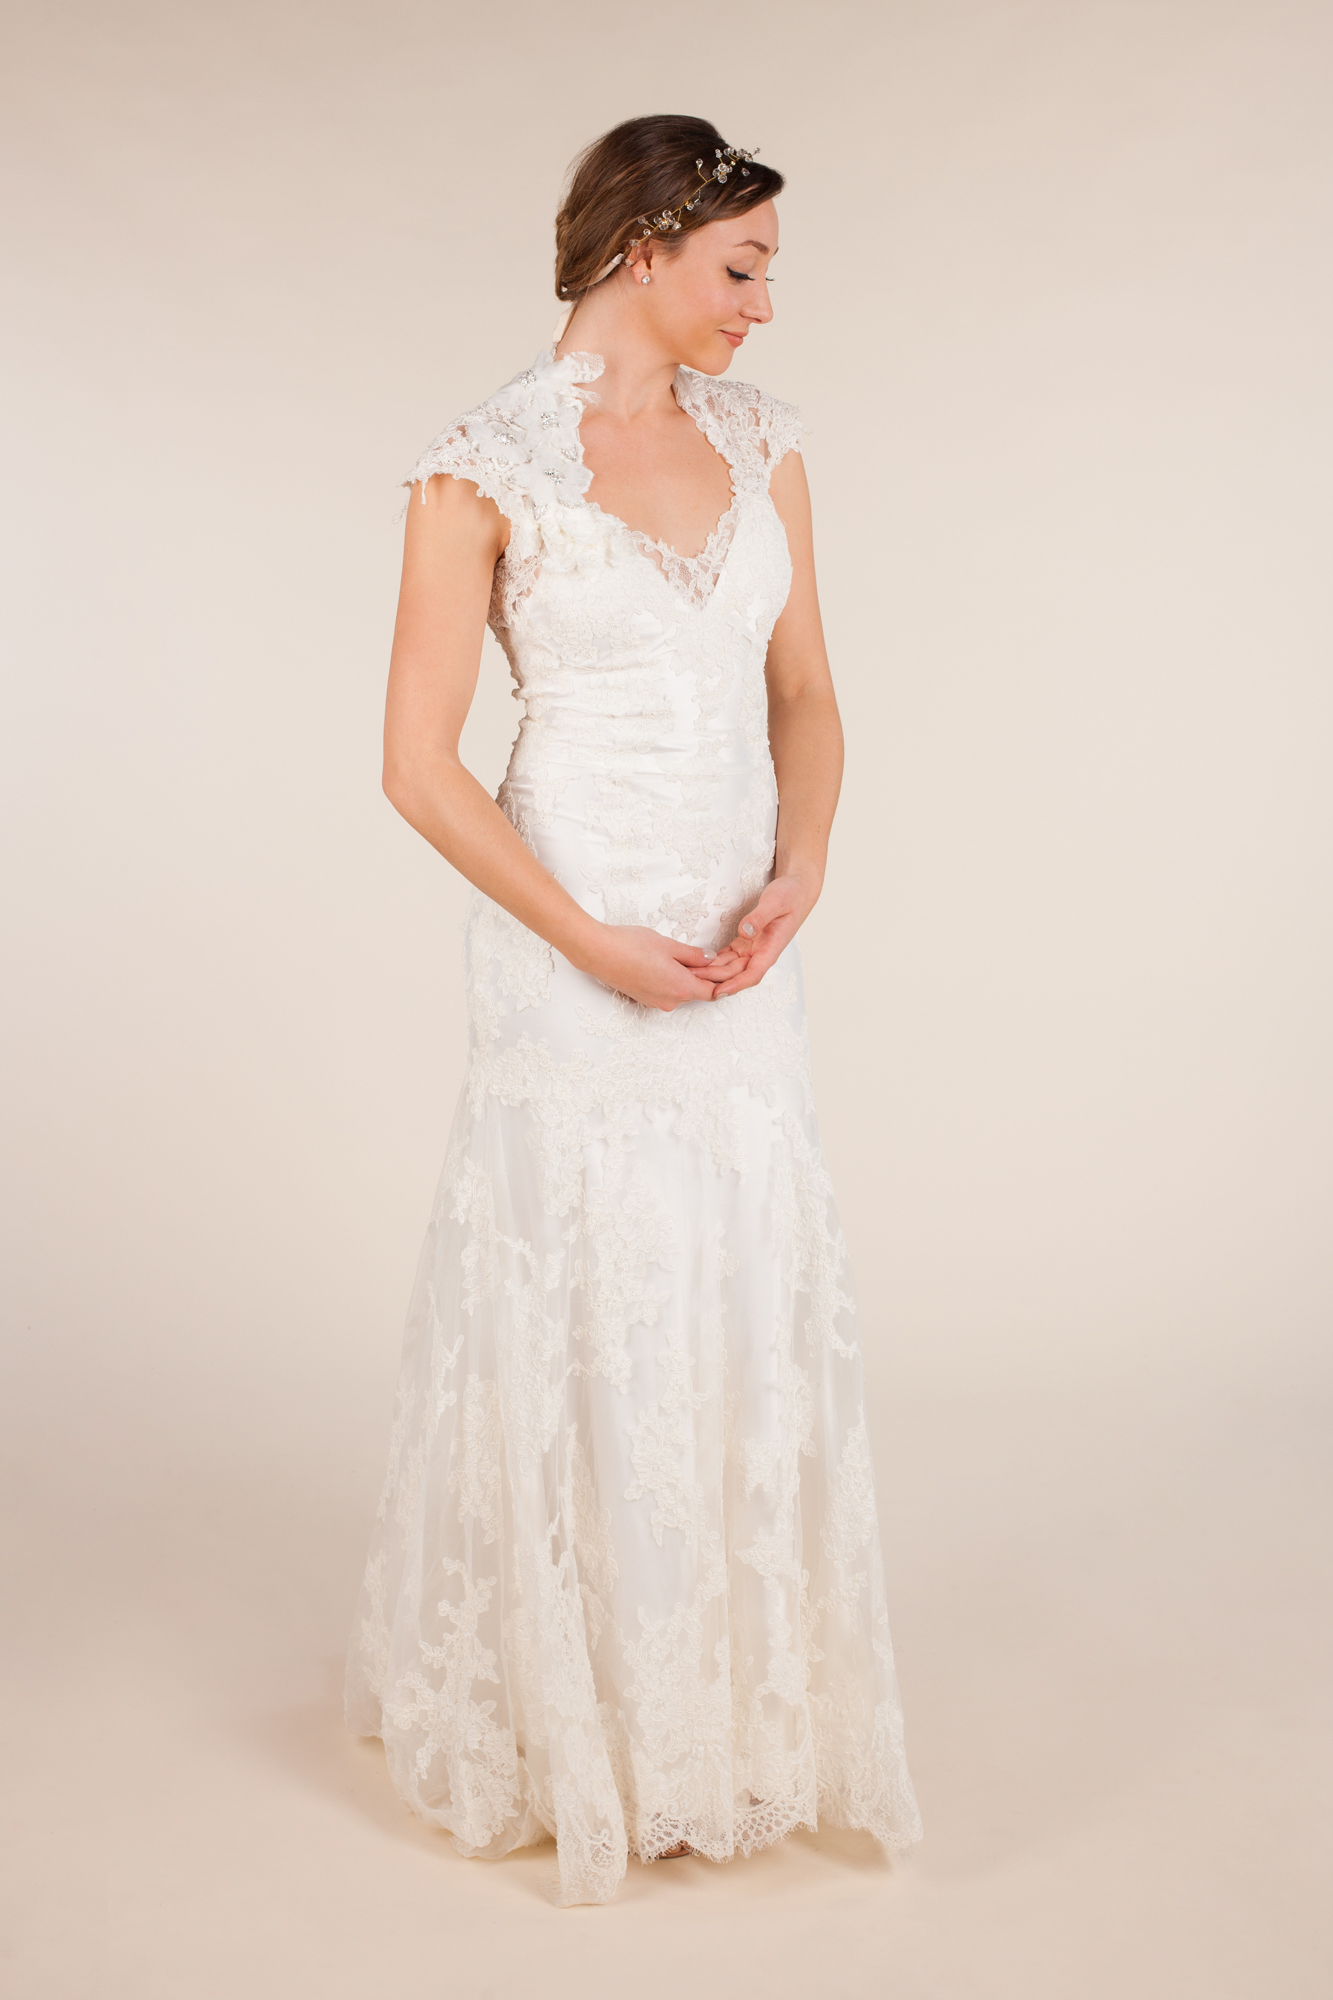 Allure bridals size 0 - $864 - (28% OFF)